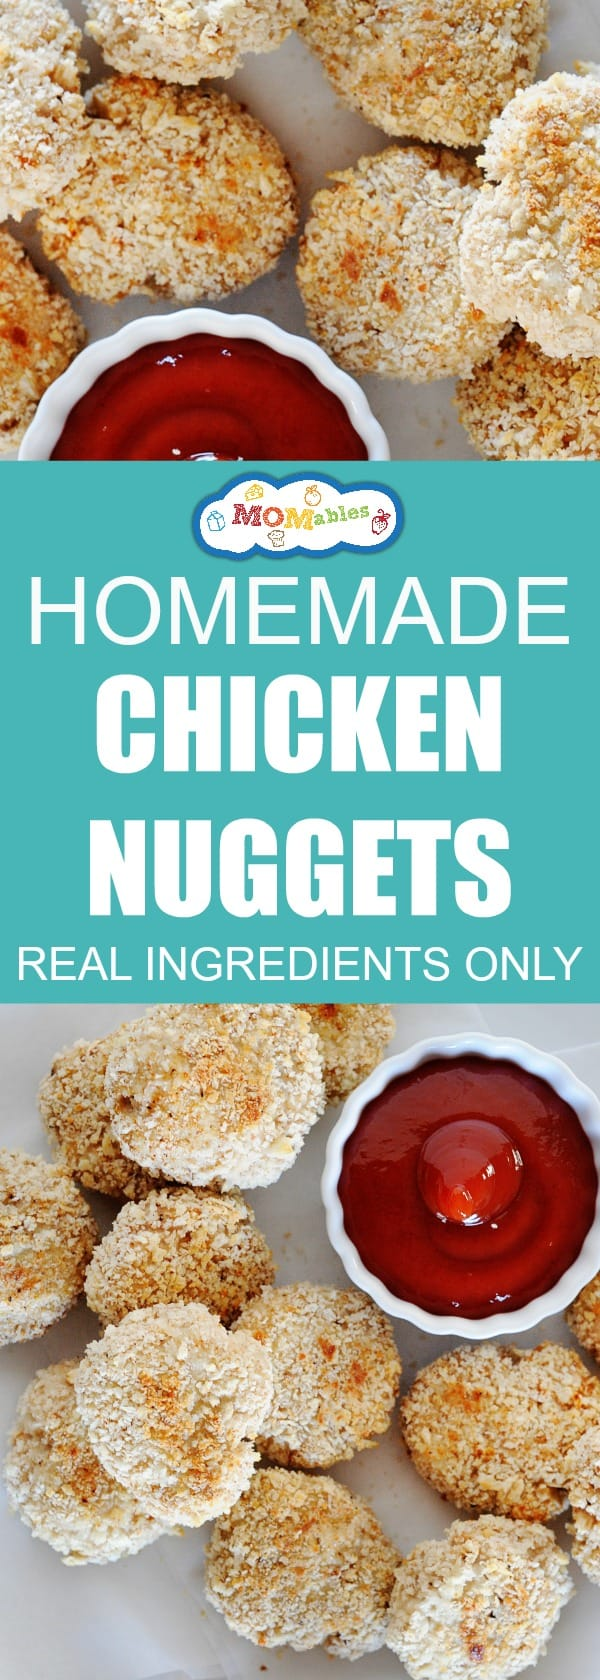 Chicken Nuggets get real a makeover. This recipe uses fresh ingredients to recreate the #1 food kids love!